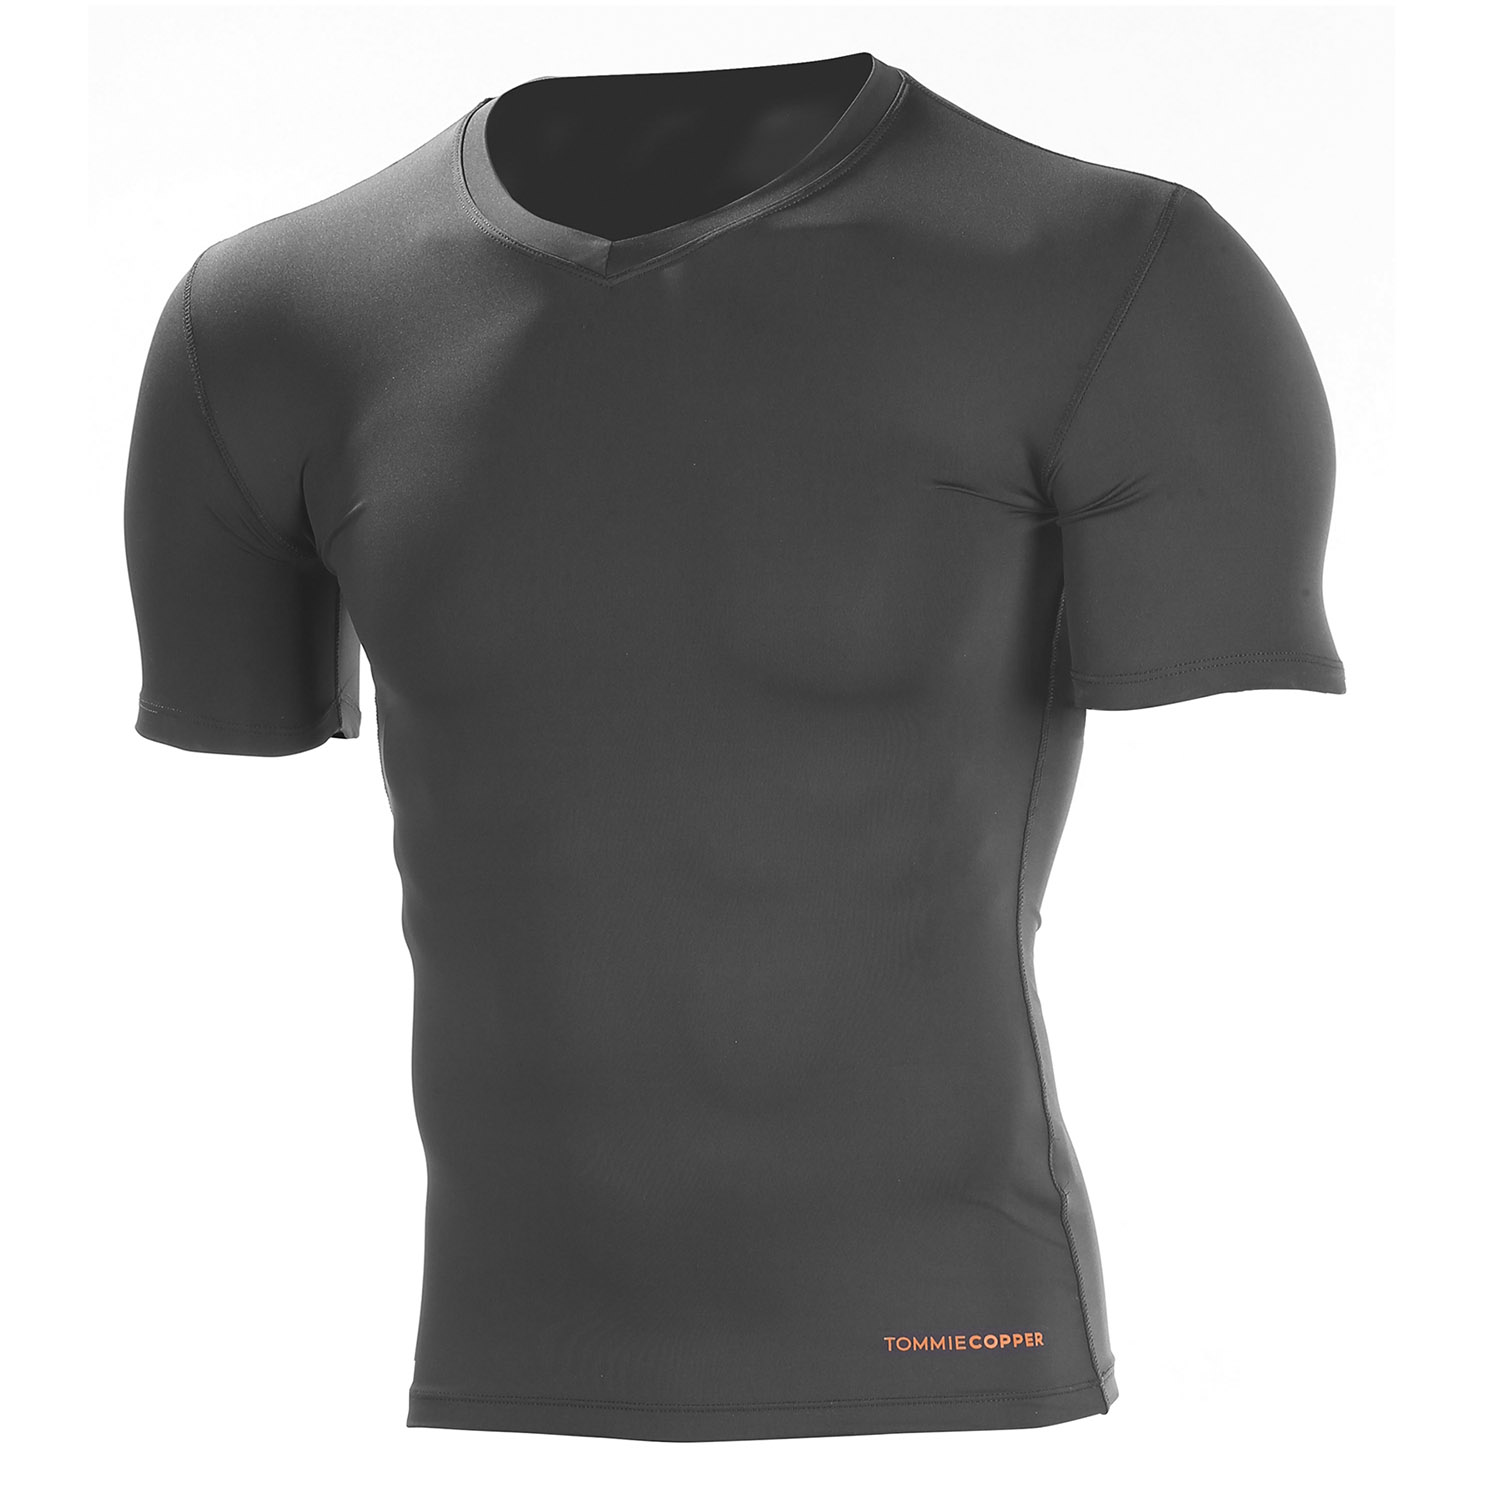 Tommie Copper Men's Omega Recovery Compression V-Neck Shirt